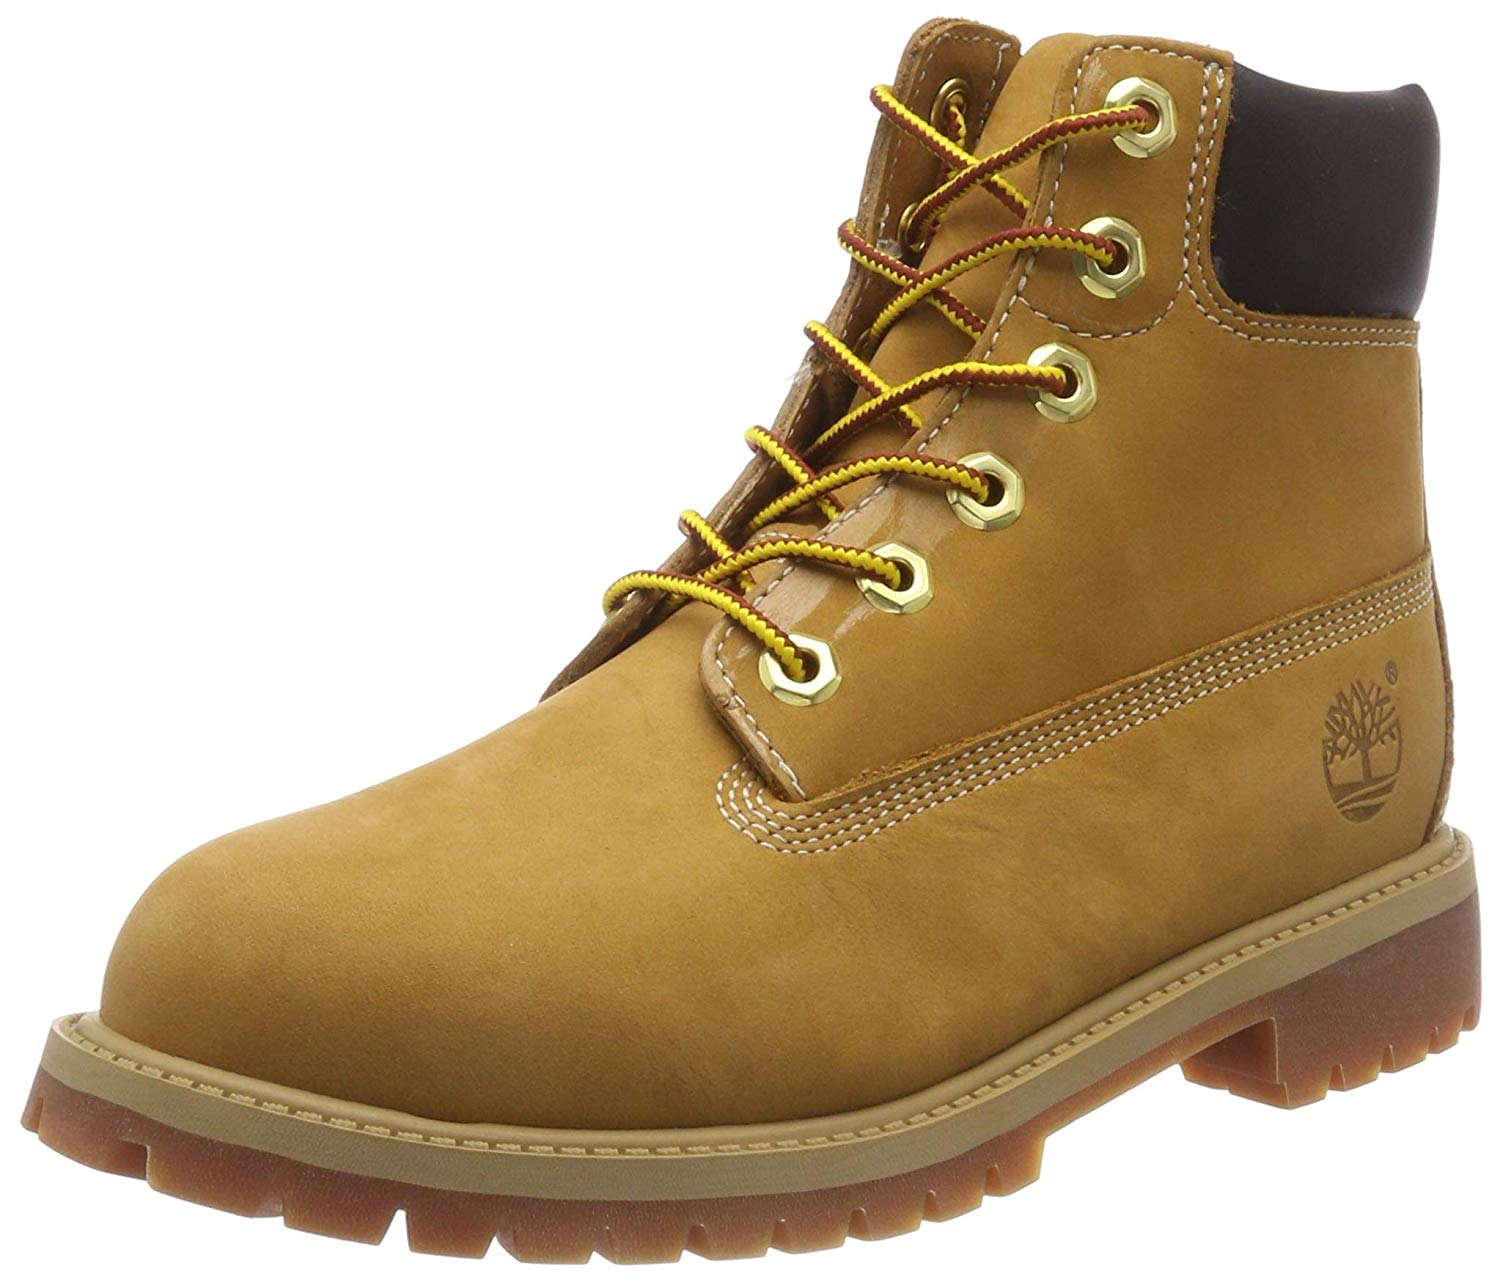 Timberland 6 inch Premium Waterproof Boot Core (Toddler/Little Kid) -  Wheat Nubuck -  4.5 M US